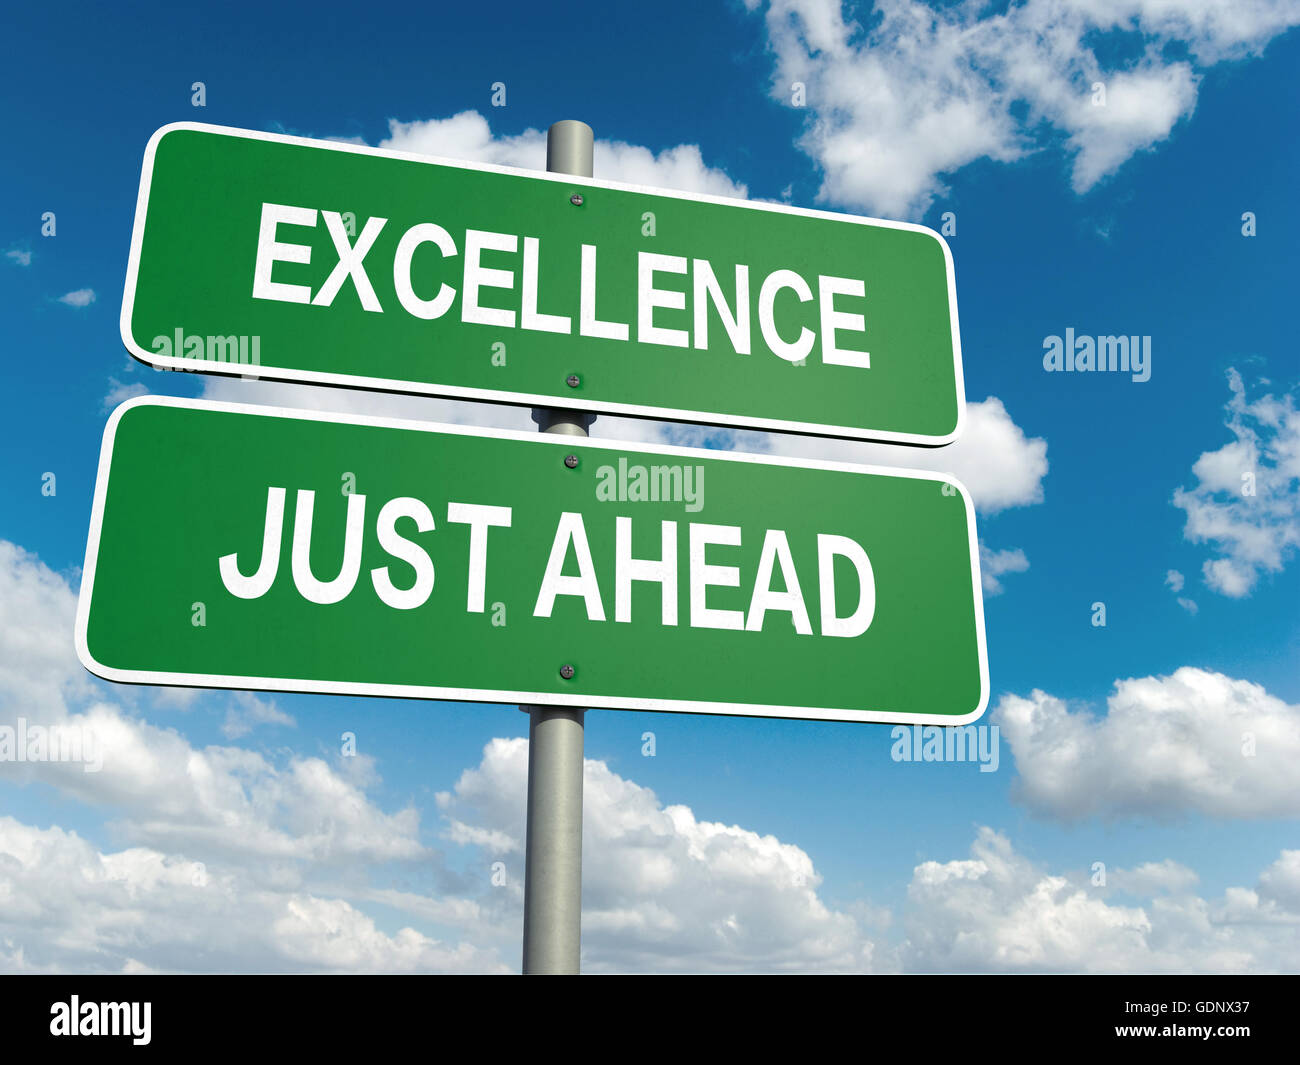 A road sign with excellence words on sky background - Stock Image